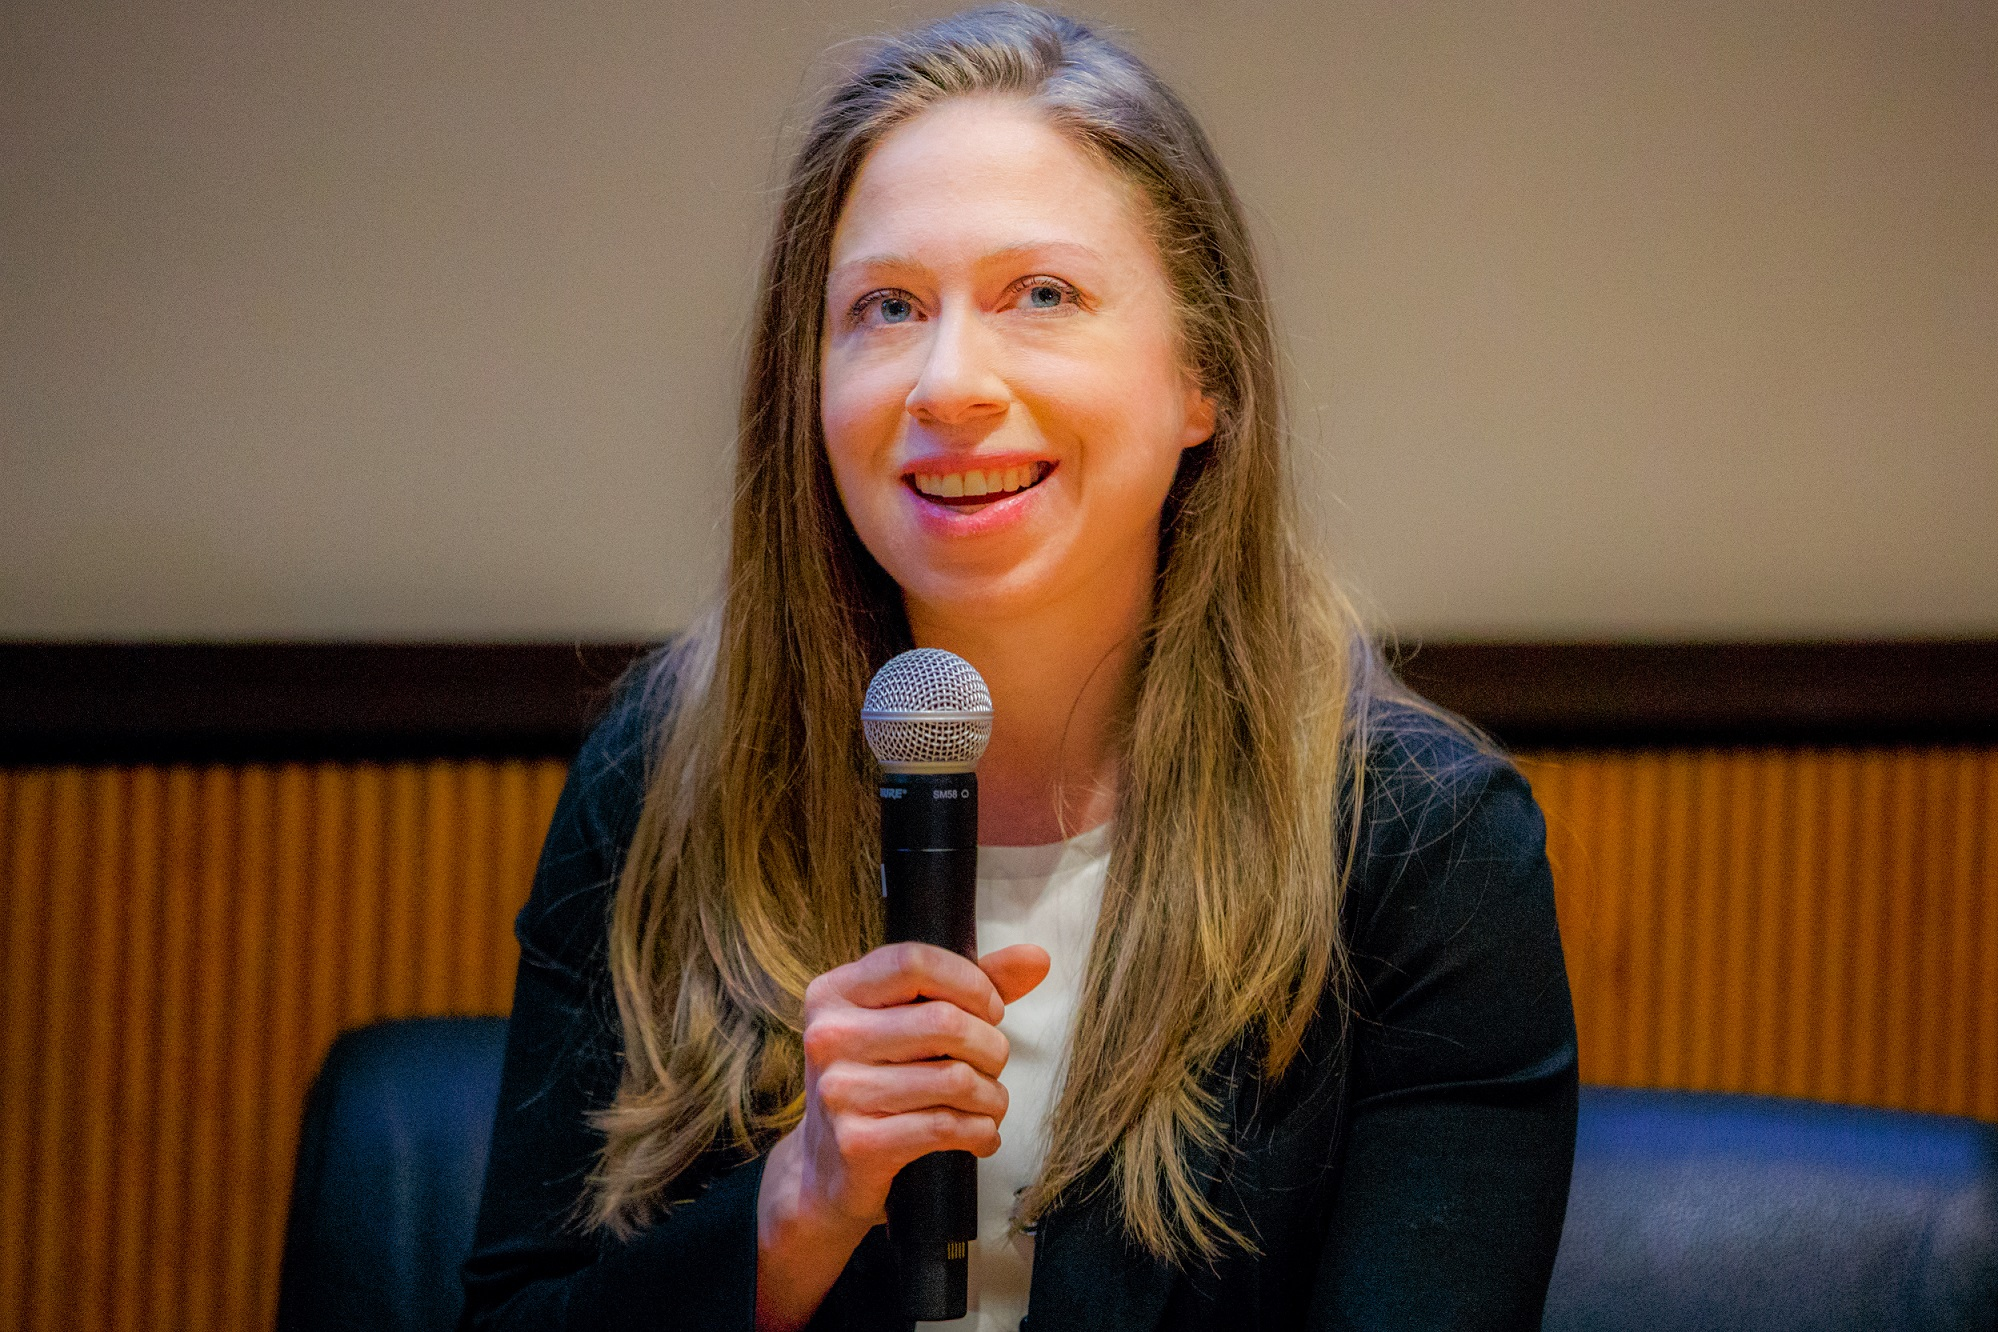 Chelsea Clinton Shares Her Insights On Public Health